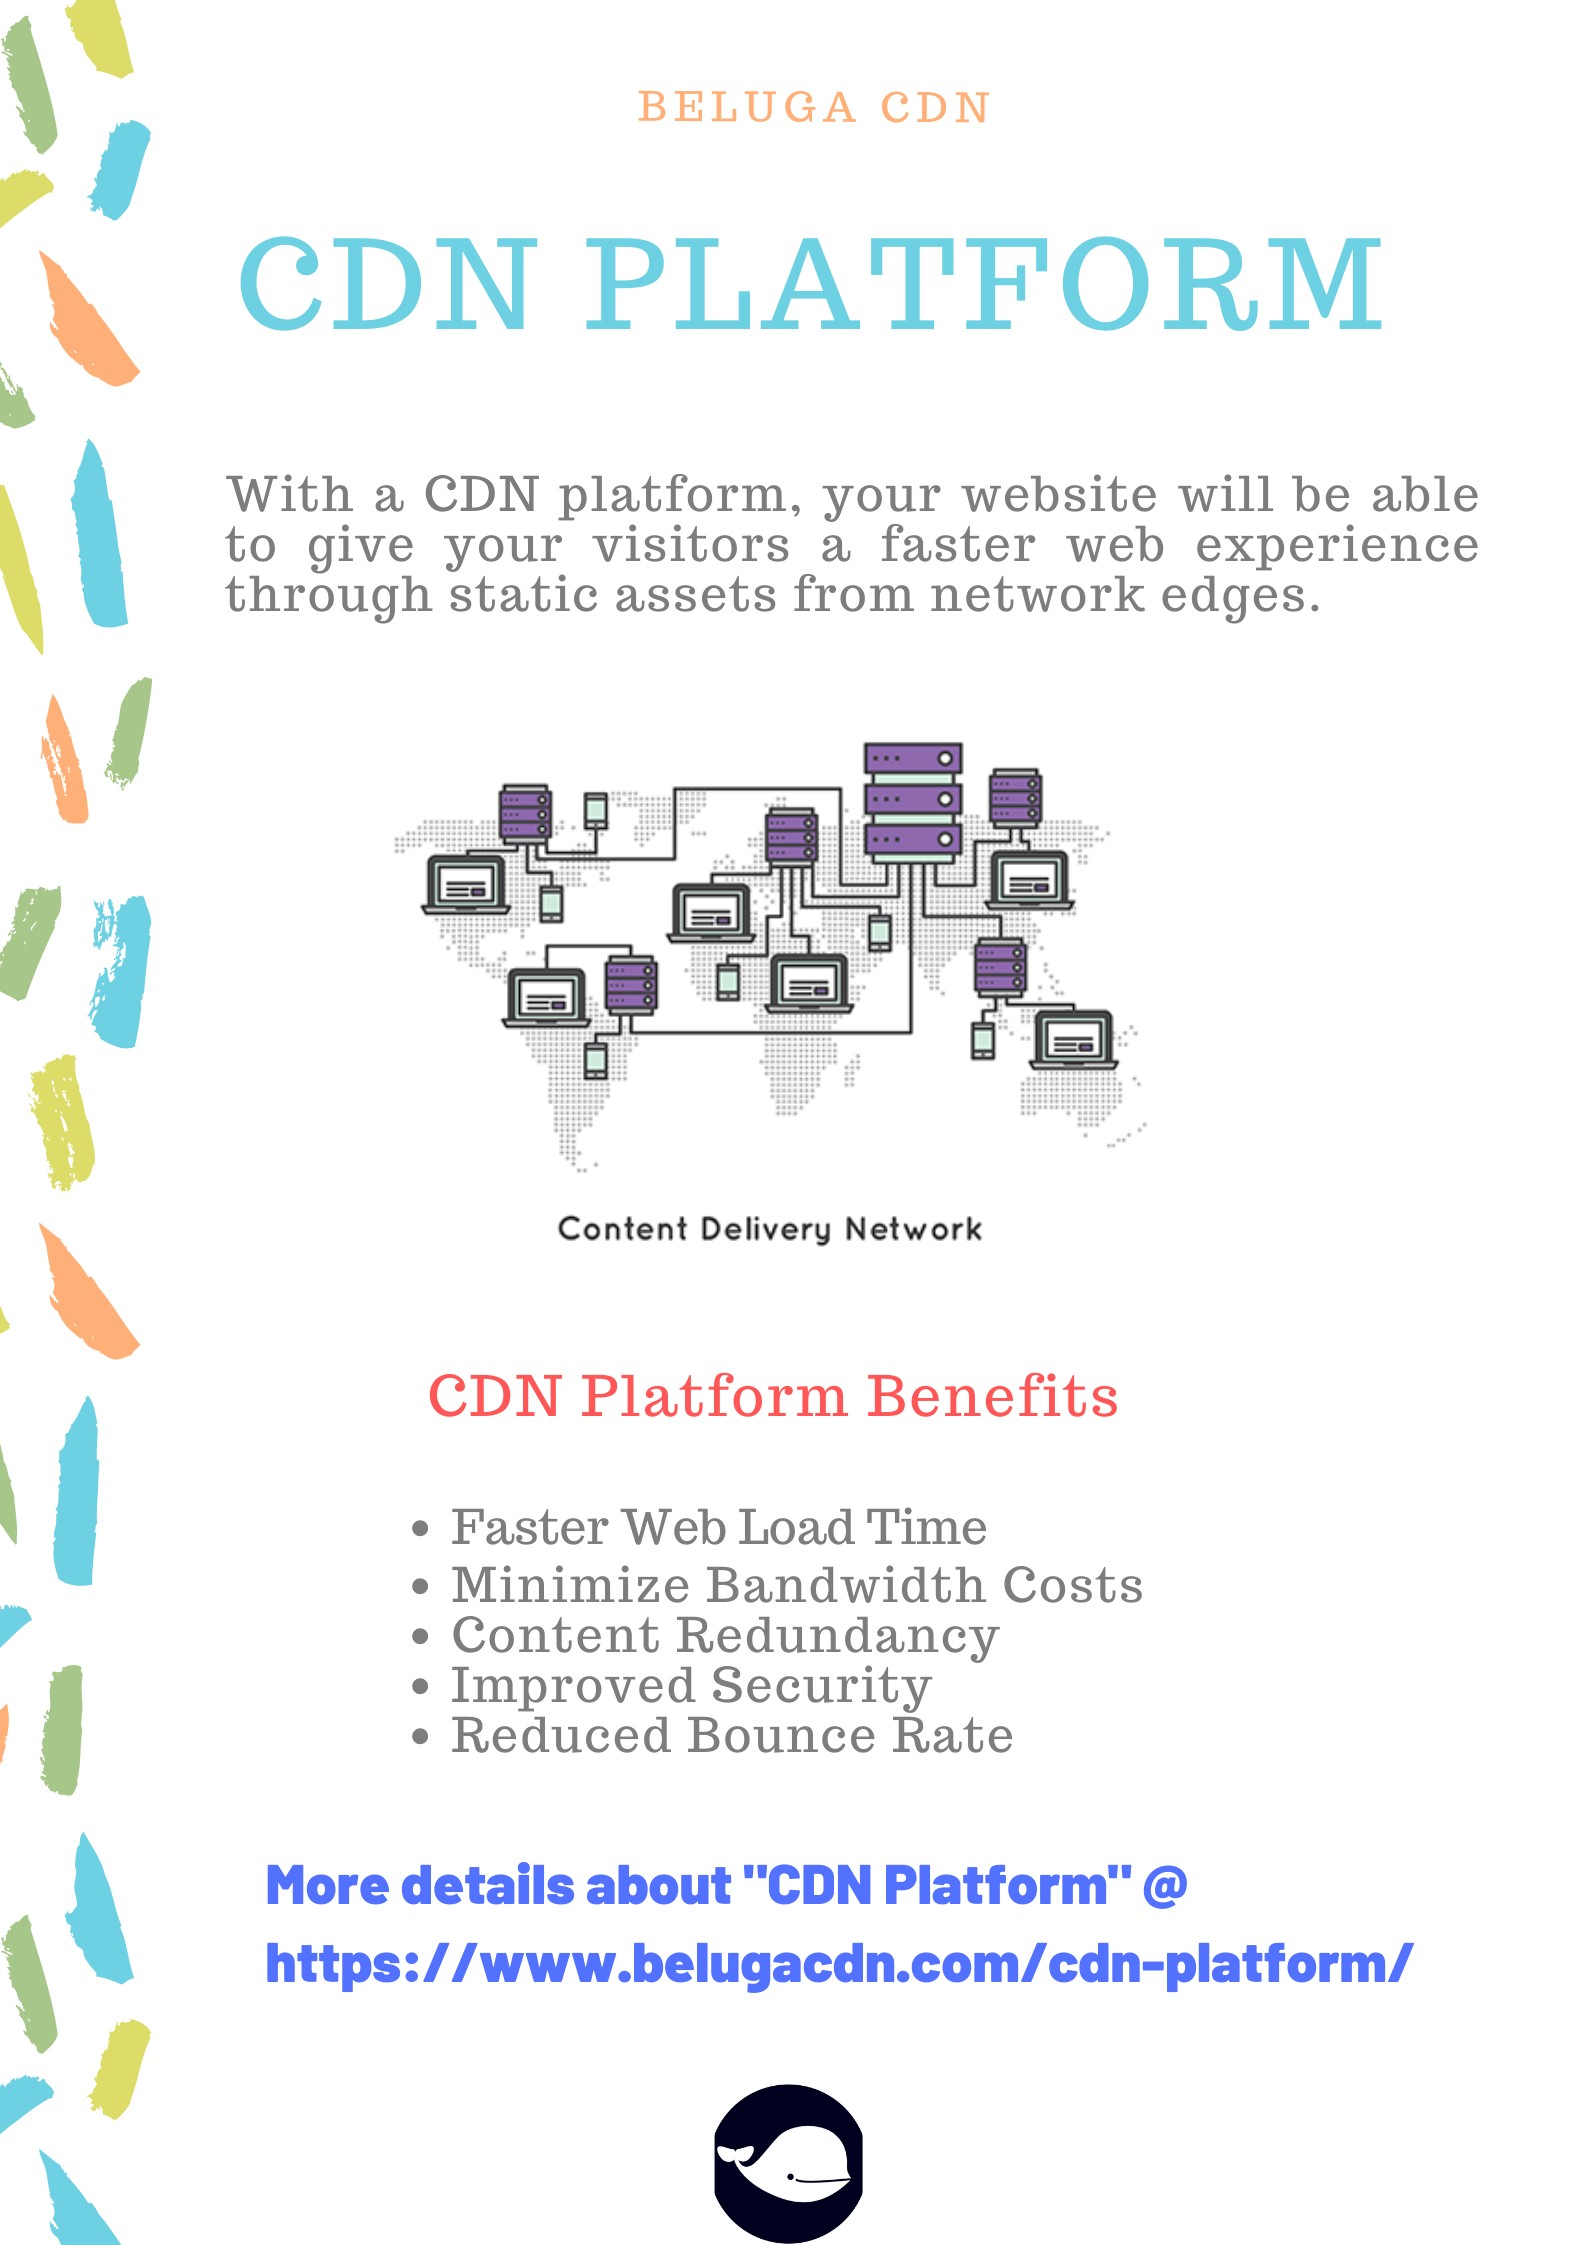 What is a CDN Platform?